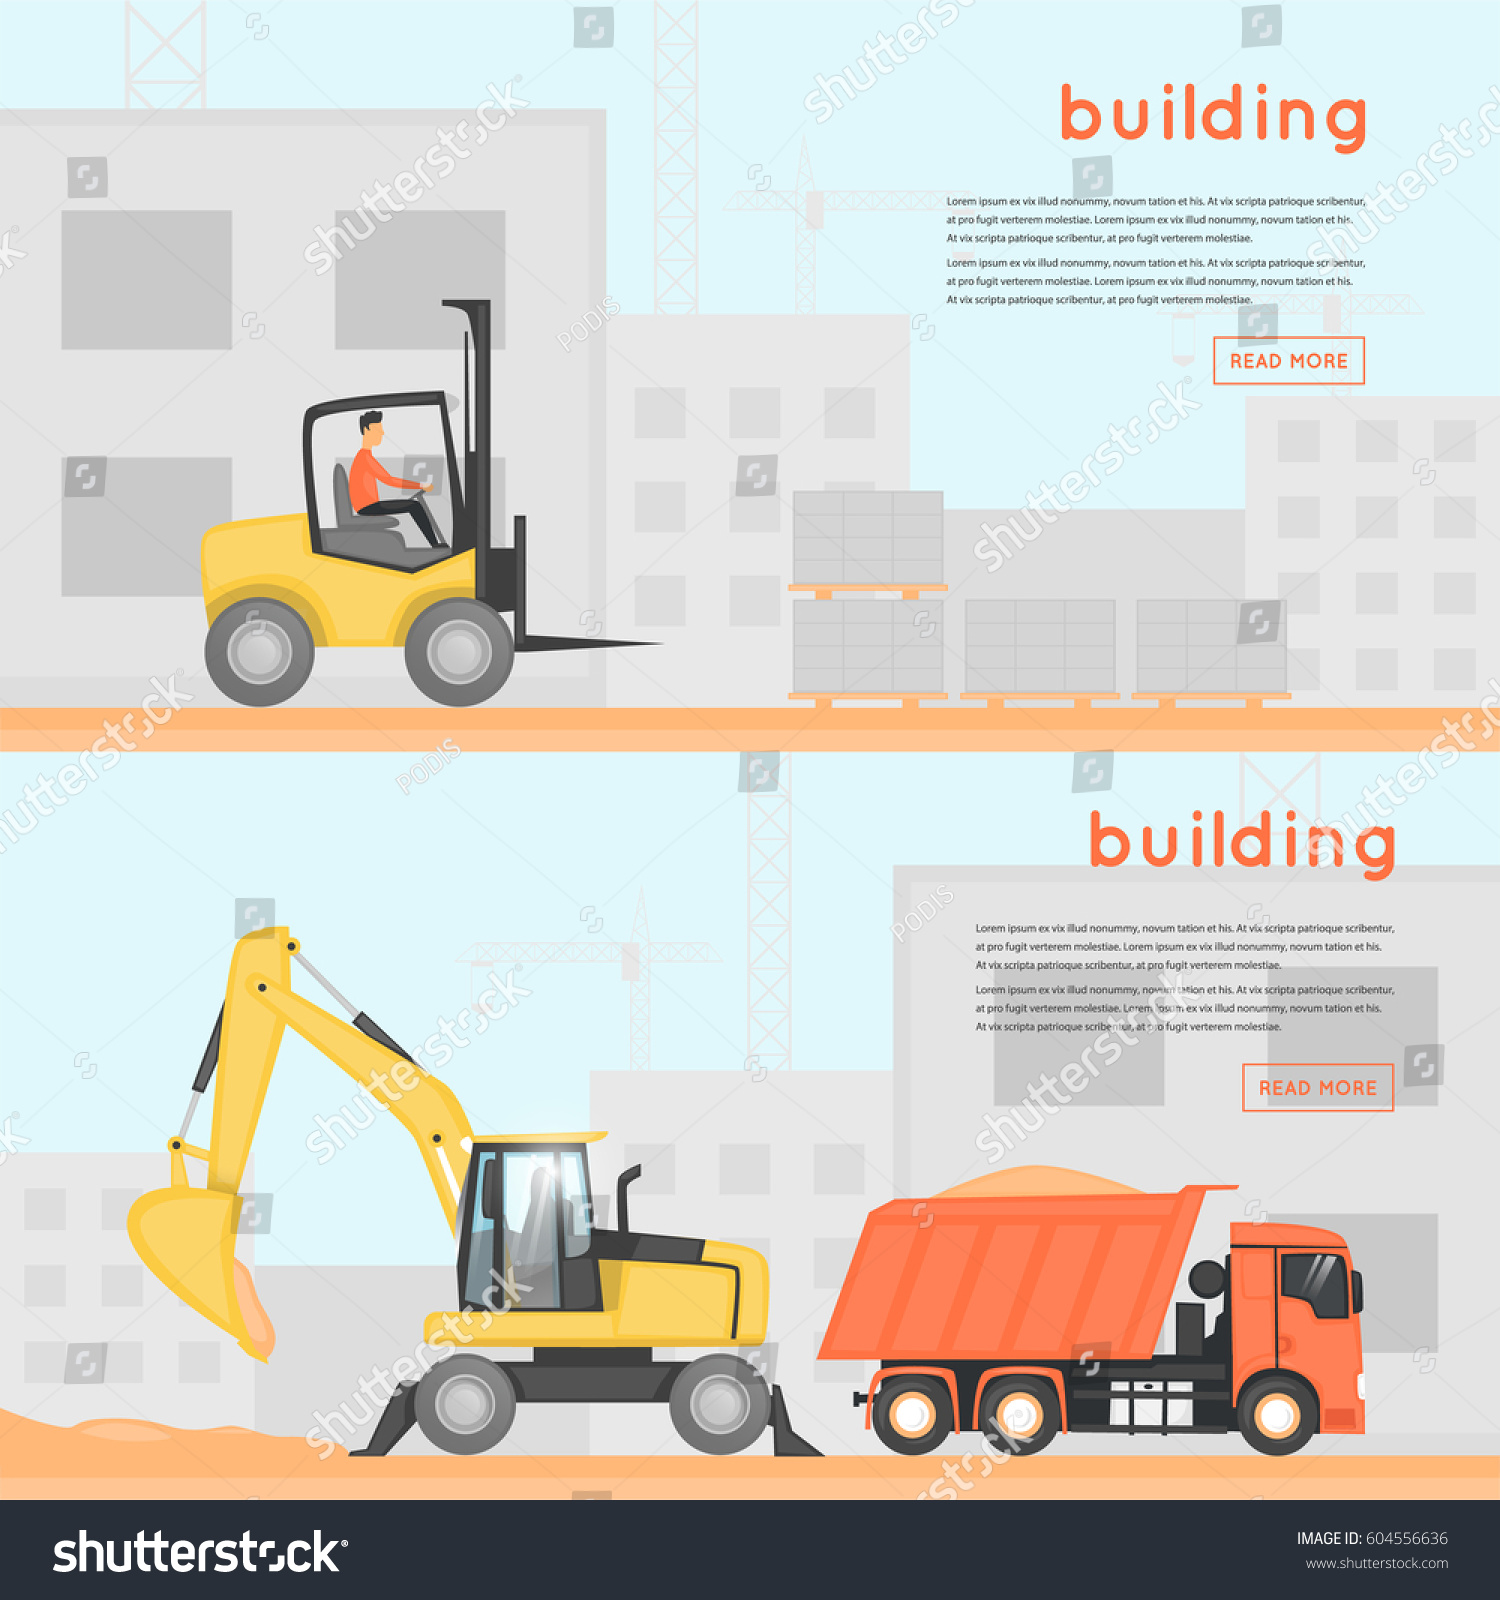 Construction Equipment Banners Brithday Banners